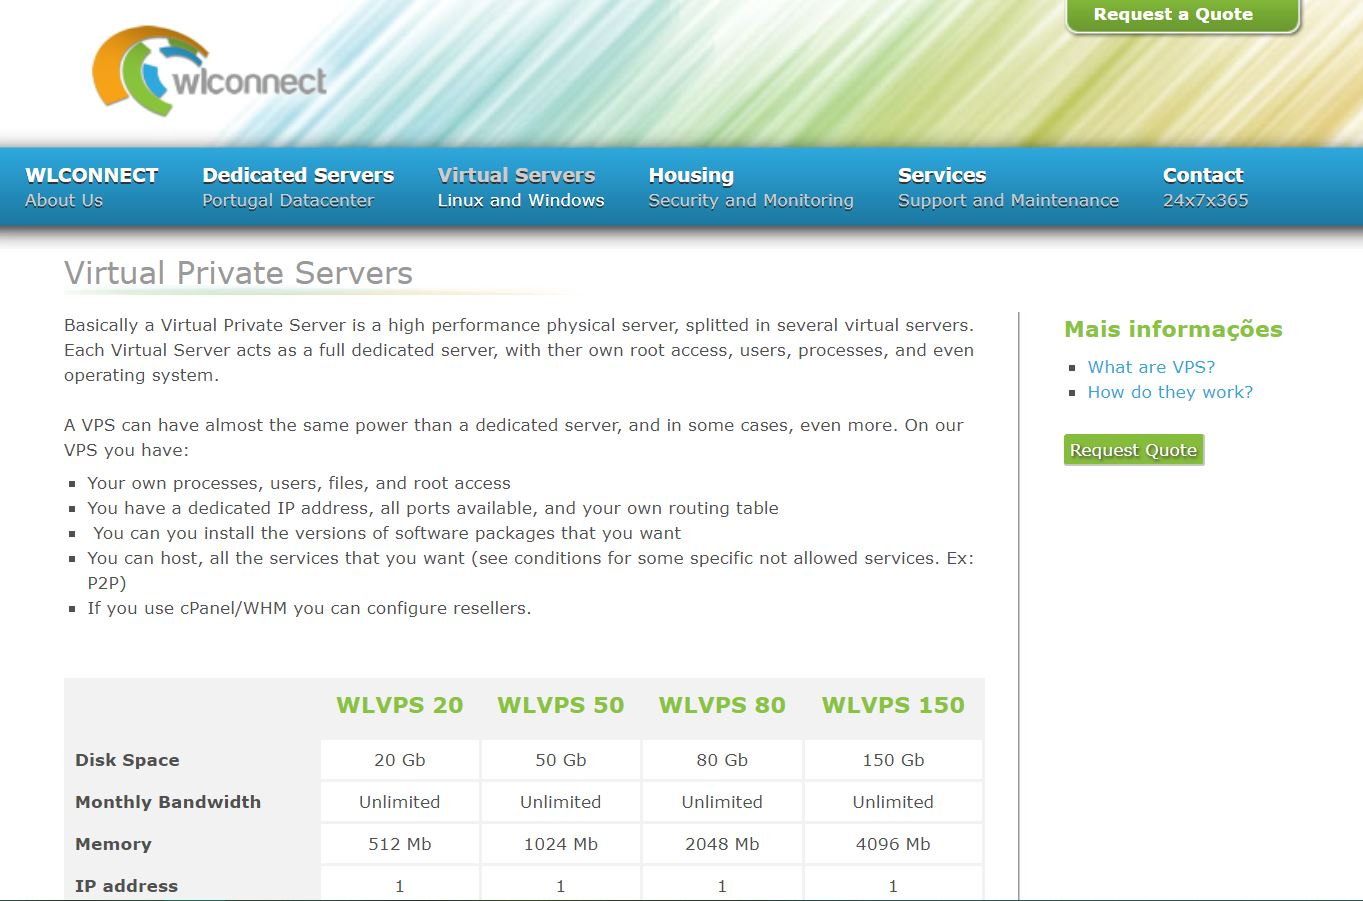 wlconnect features